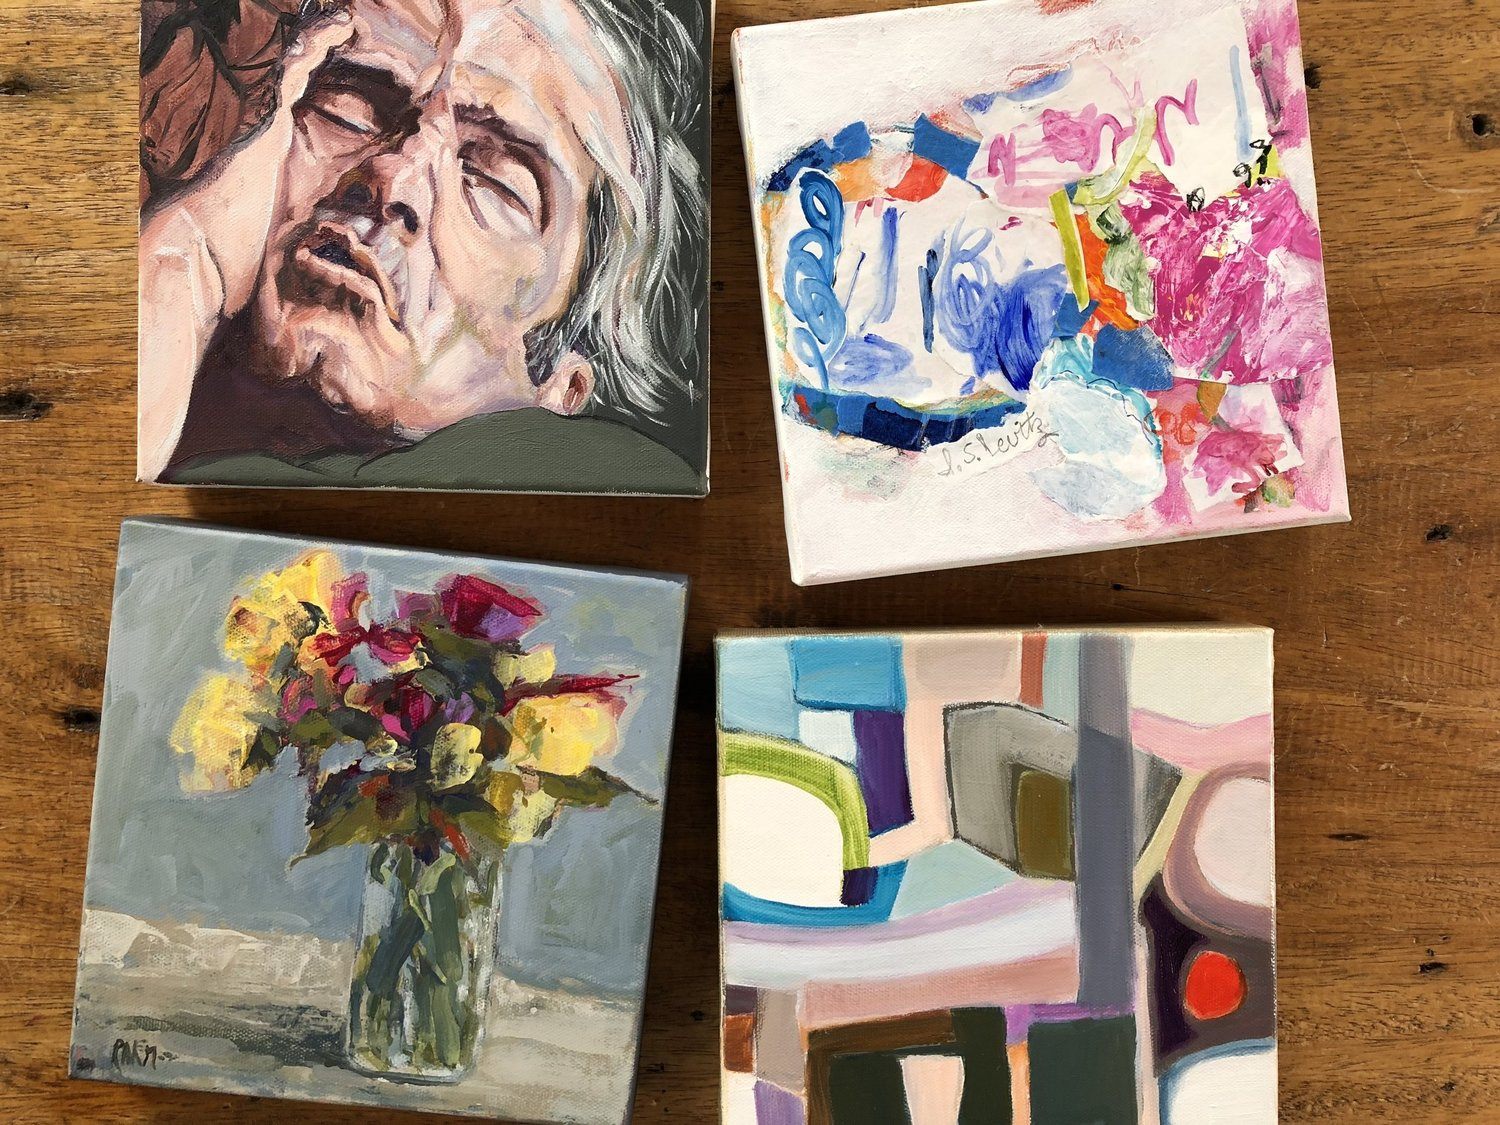 8x8+Small+Works+Show+at+the+West+Hartford+Art+League.jpg